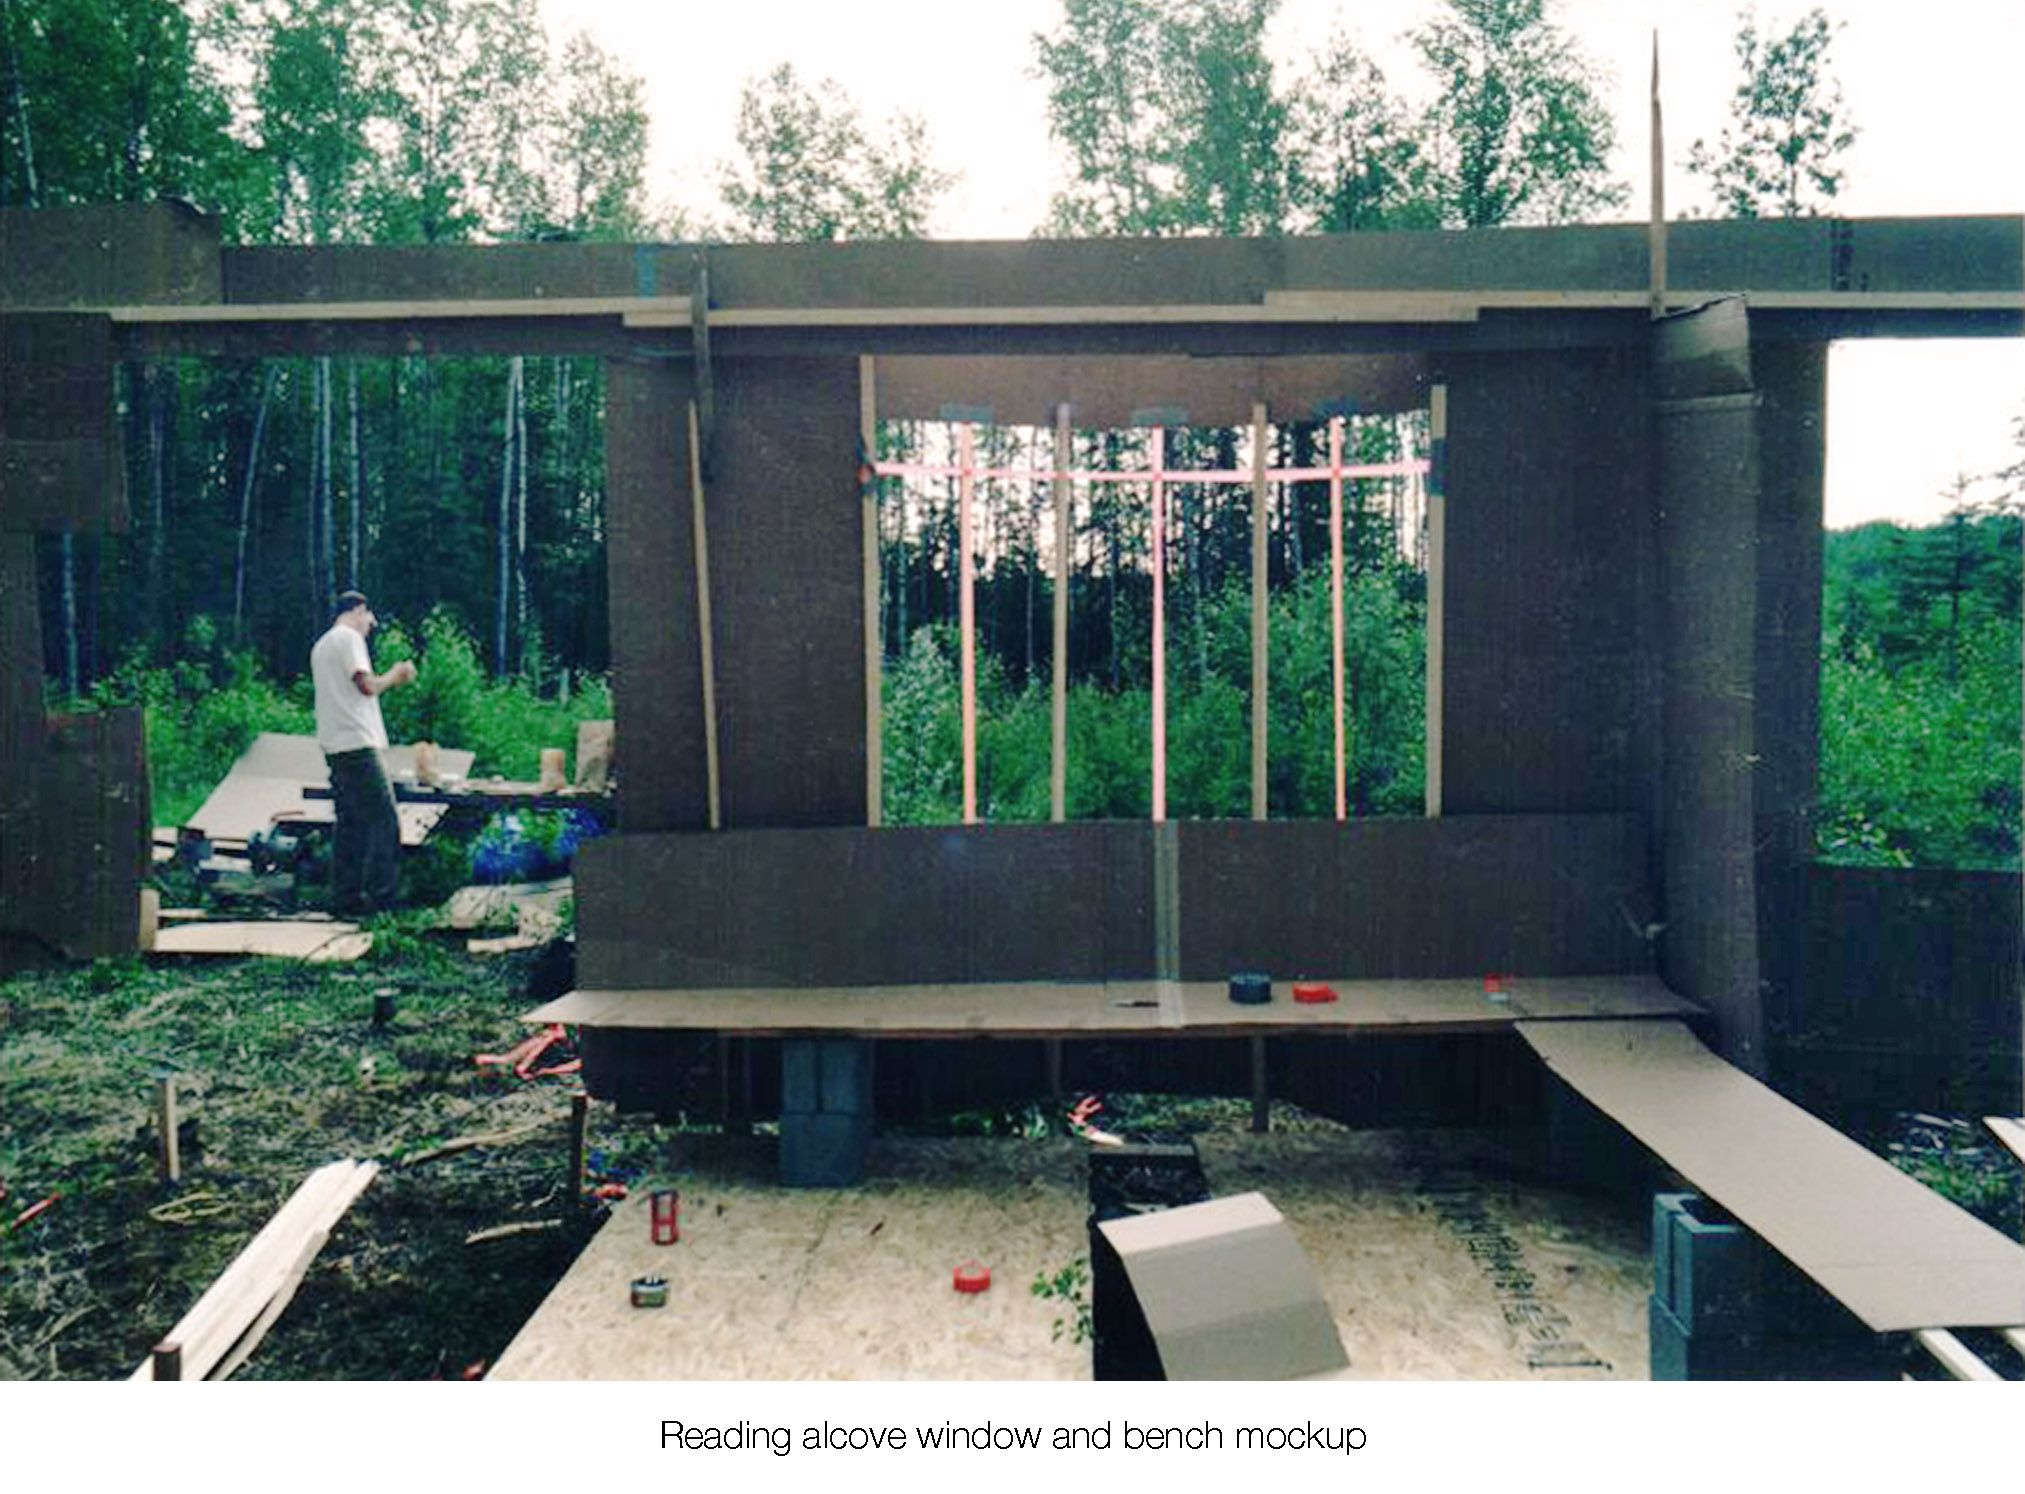 House on the meadow reading alcove on site window design and sitting bench mock-up